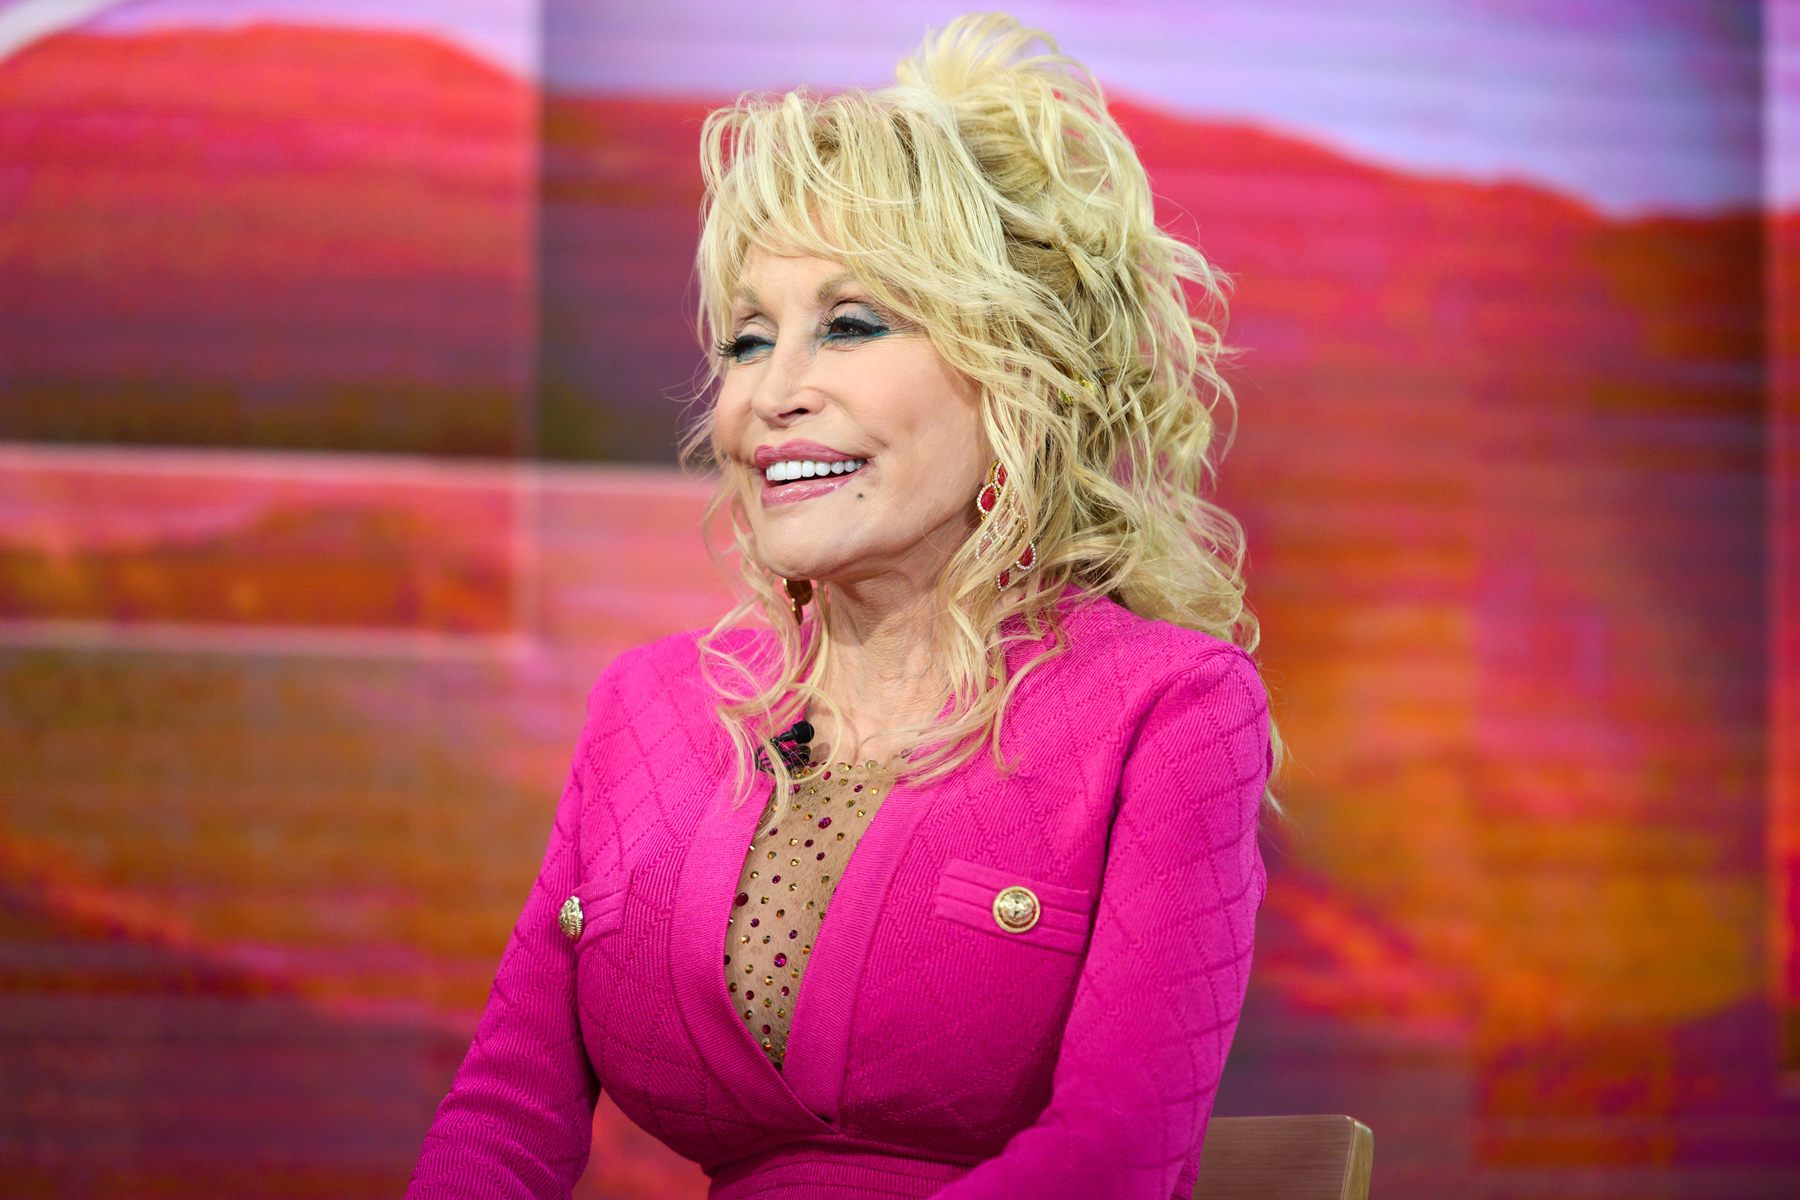 Dolly Parton on Wednesday, November 20, 2019